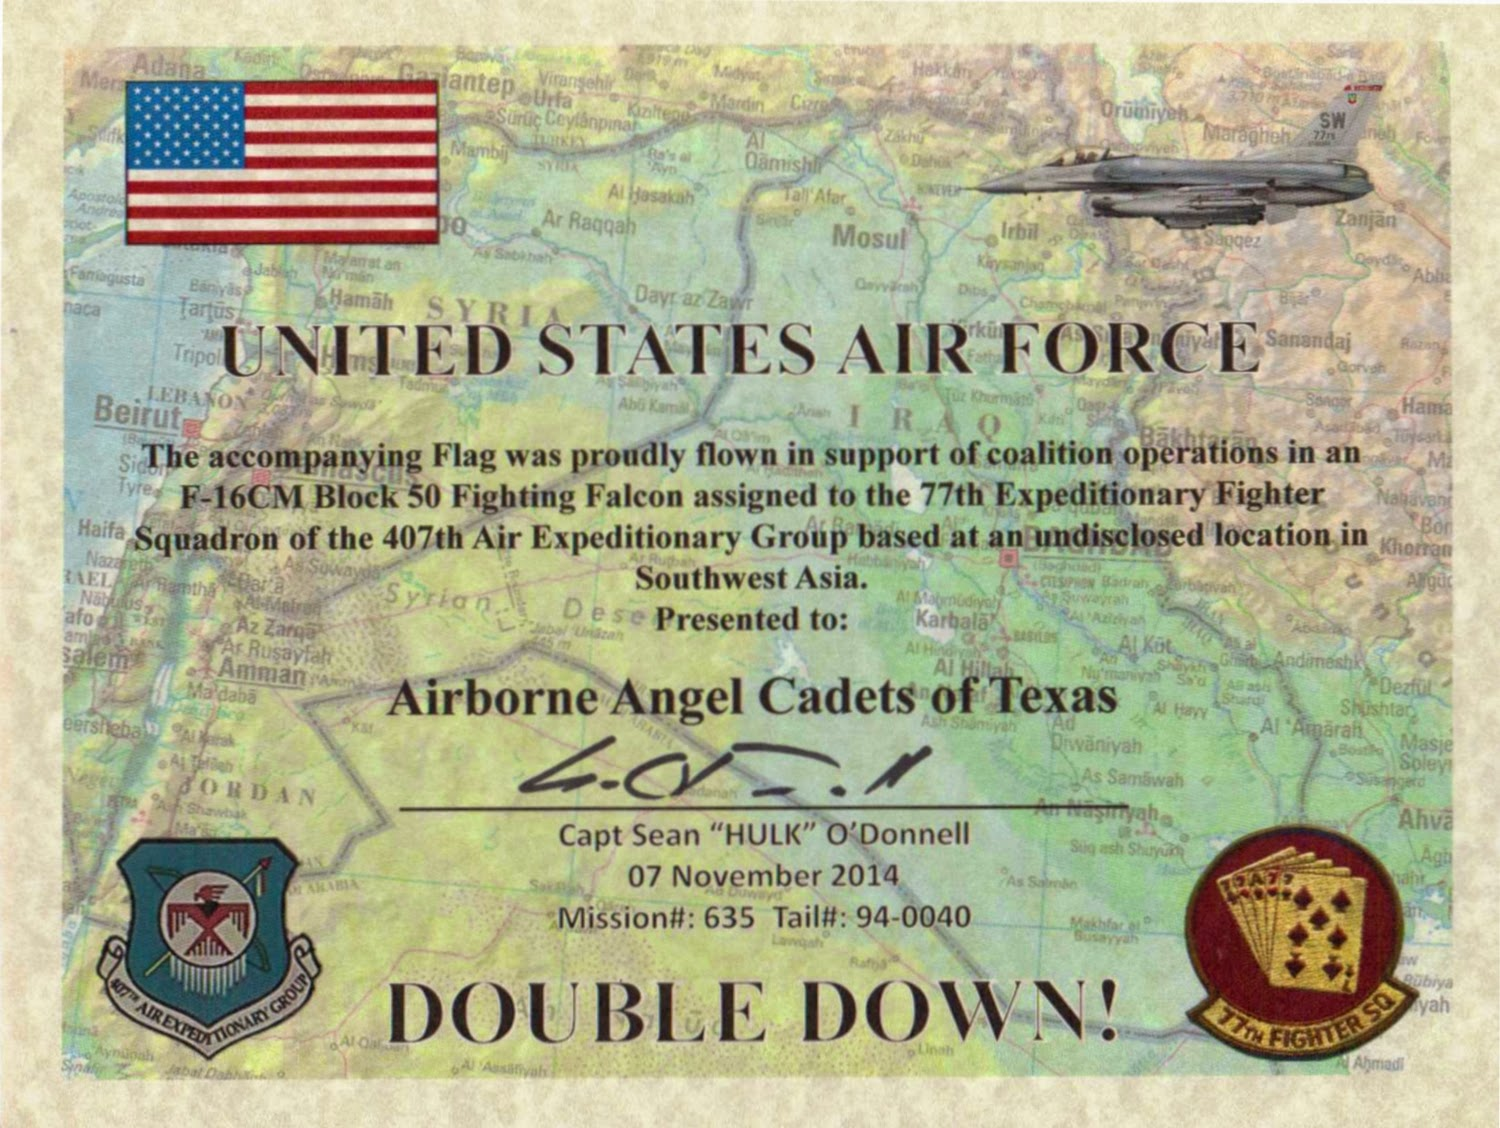 USAF Certificate for care packages received in 2014